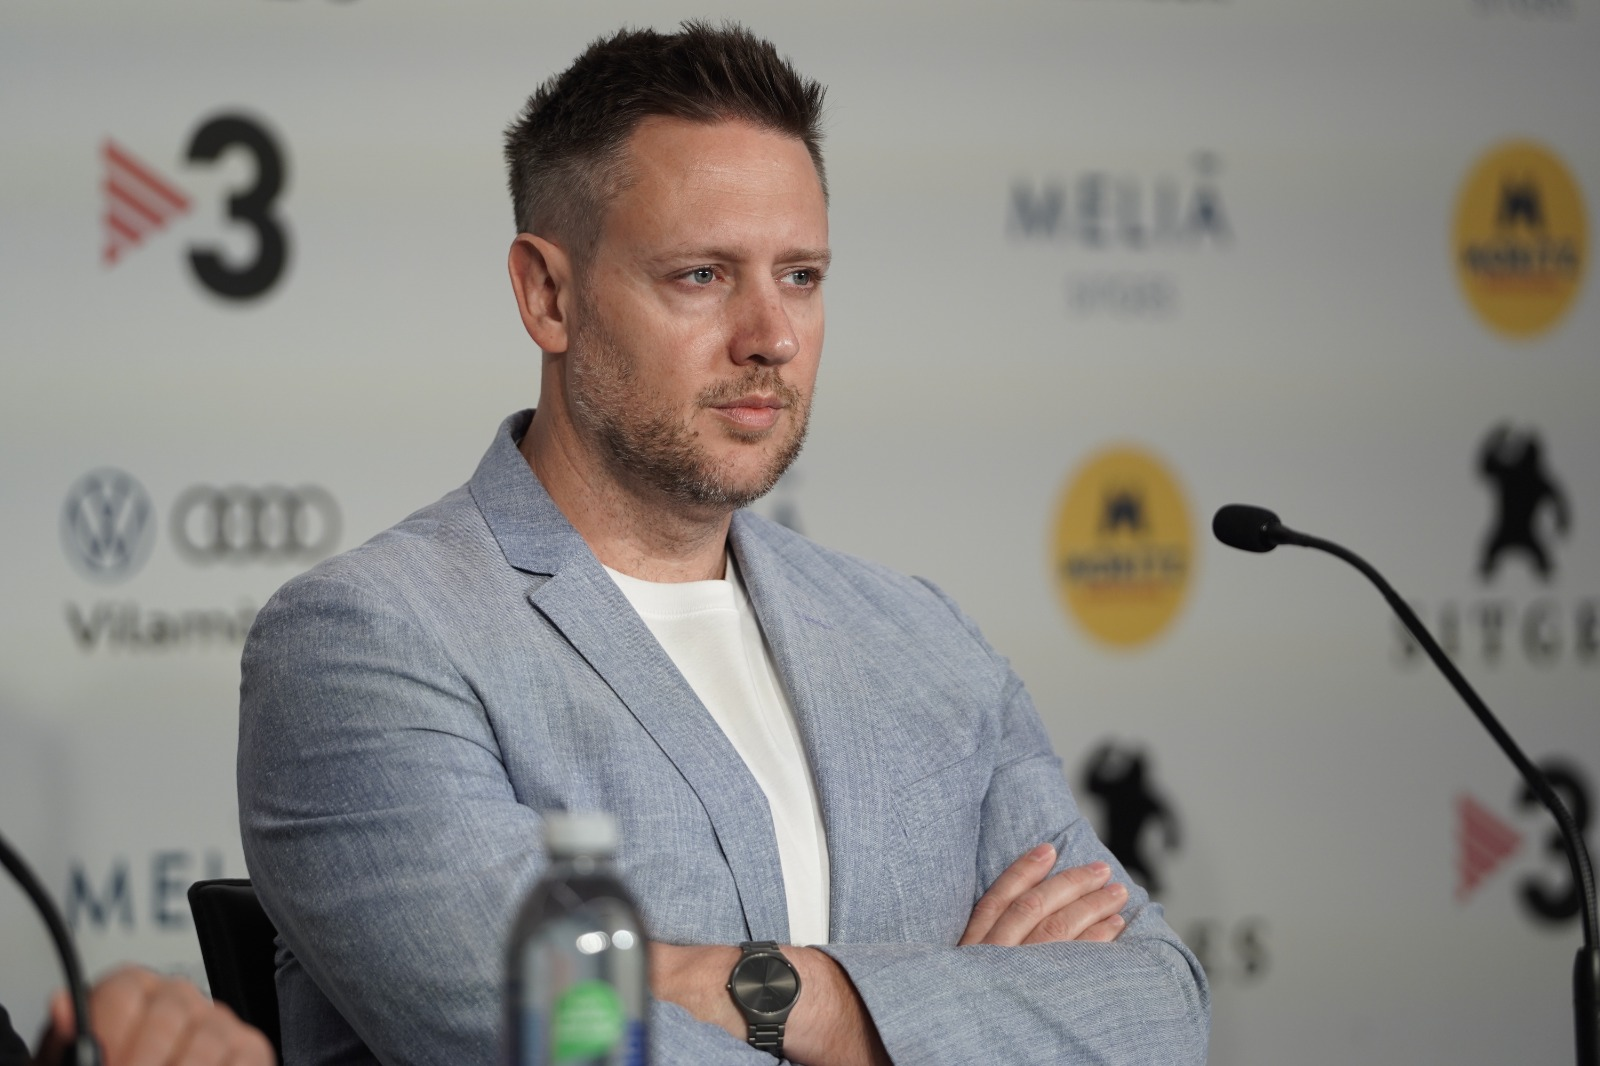 Sitges Heads into its Final Stretch with the Time Machine Award presented to Neill Blomkamp